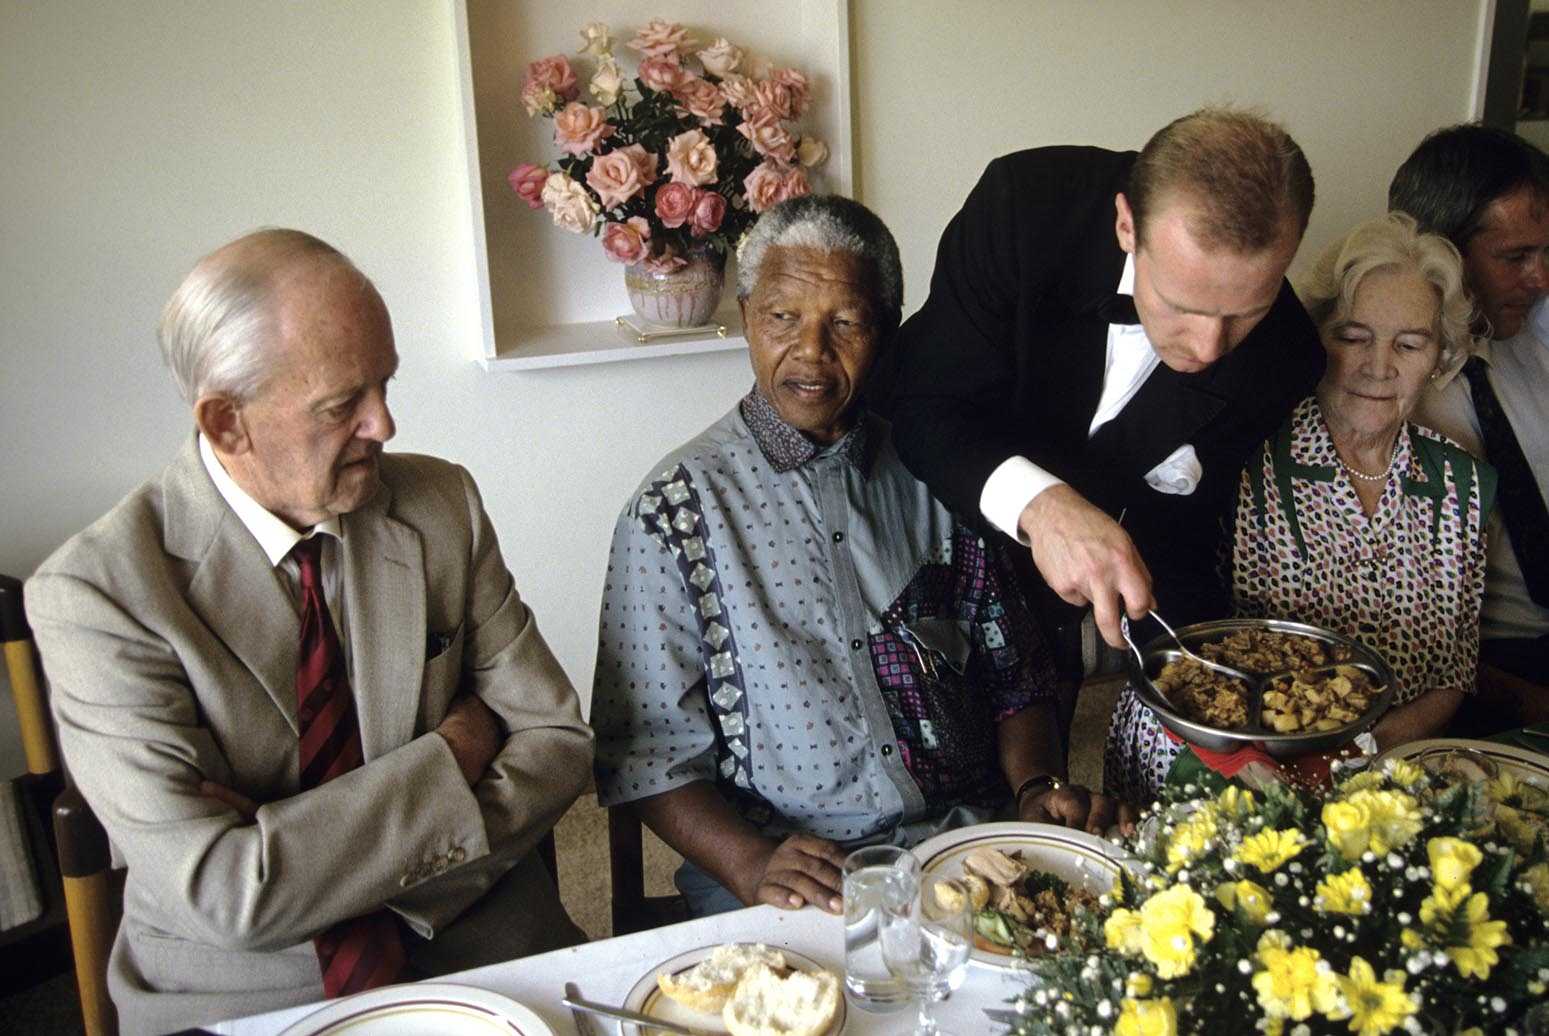 Nelson Mandela is served lunch at the home of a wealthy white land owners during his campaign for President.  After more then 27 years in jail as an anti-apartheid activist,   Nelson Mandela lead a 1994 campaign for President as a member of the African National Congress (ANC),  in the first free elections in South Africa in 1994.  Mandela has received more than 250 awards over four decades, including the 1993 Nobel Peace Prize.